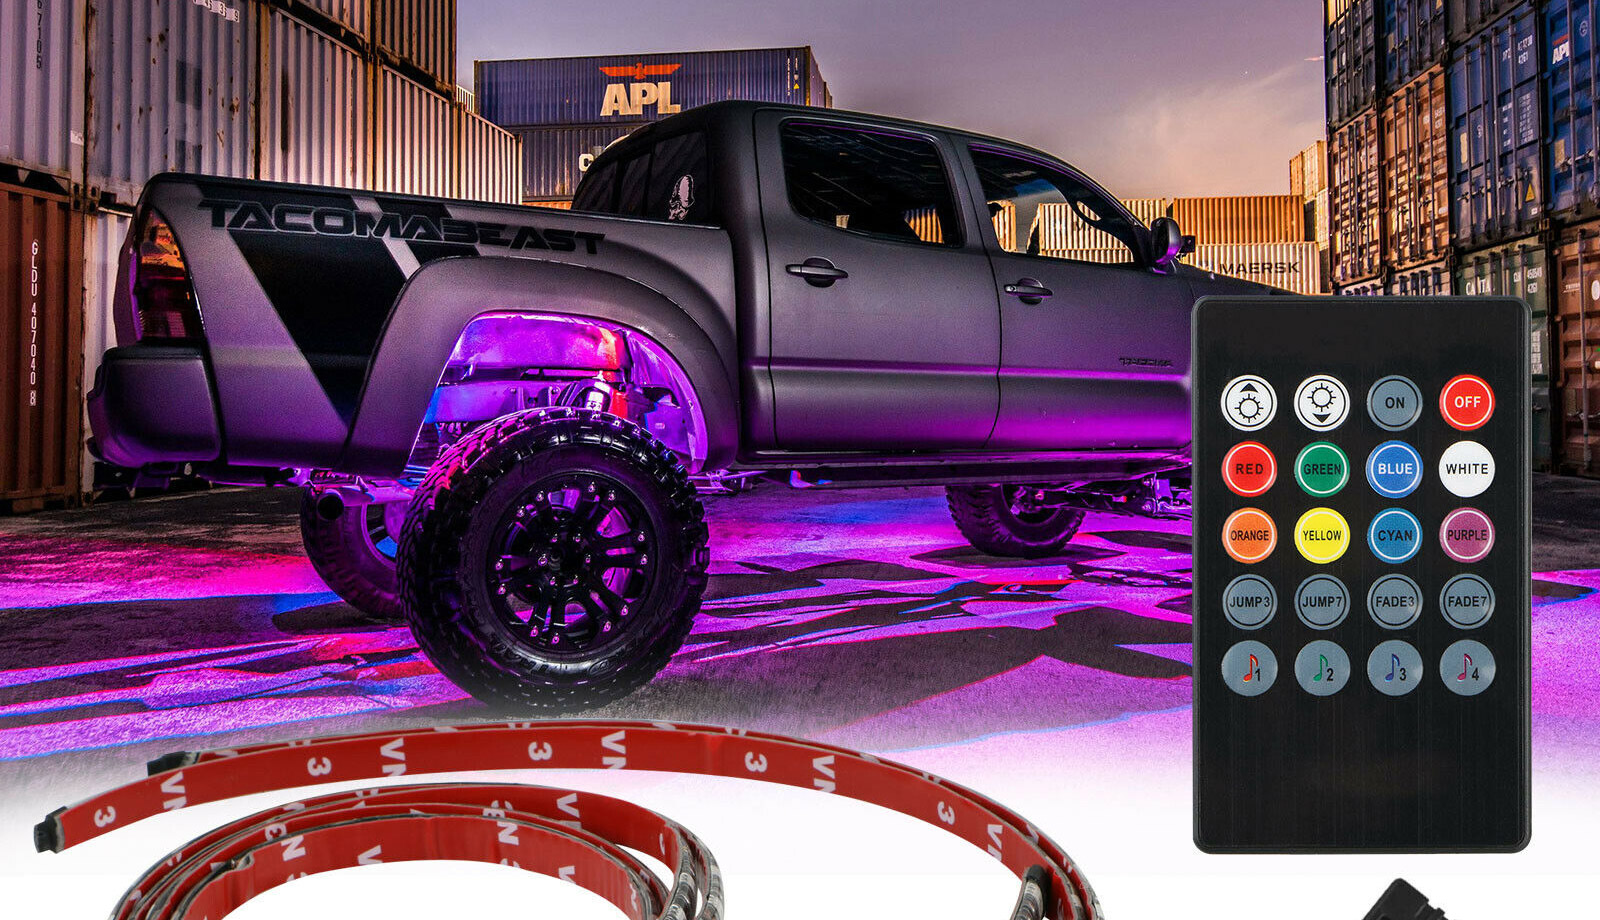 Controller for truck underglow